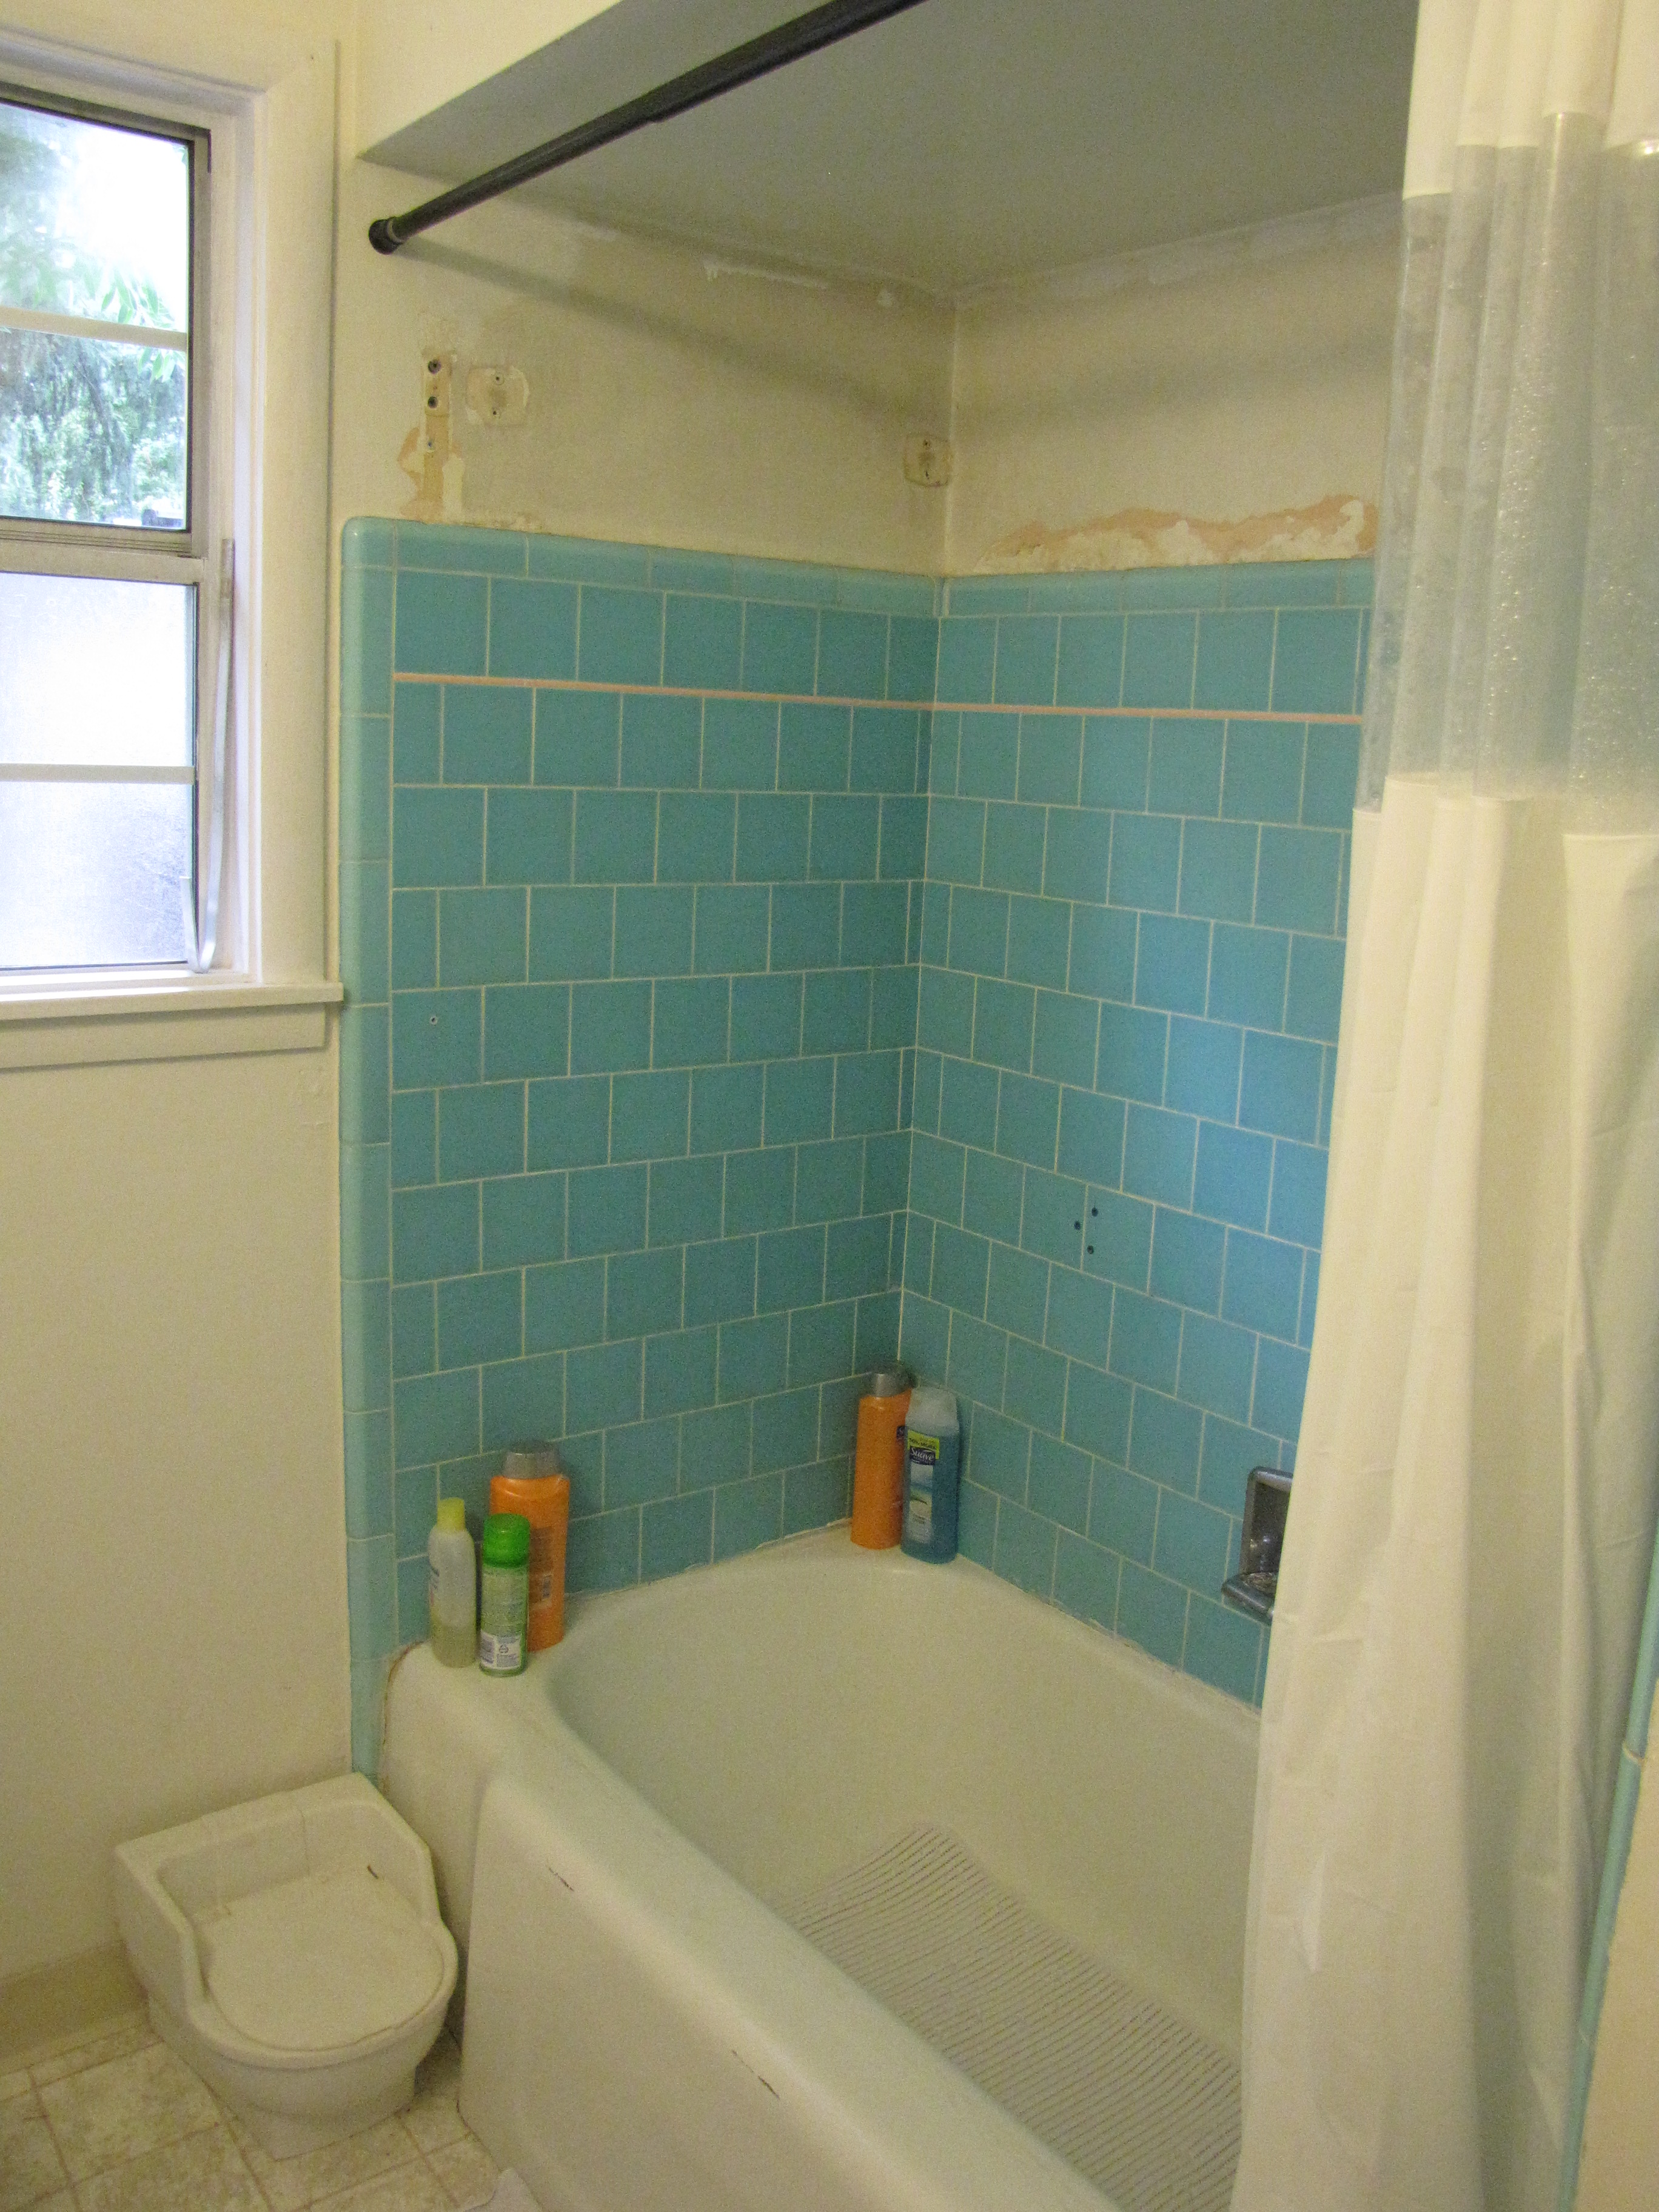 Q & A Wednesday: How can I update my bathtub and shower? | The ...